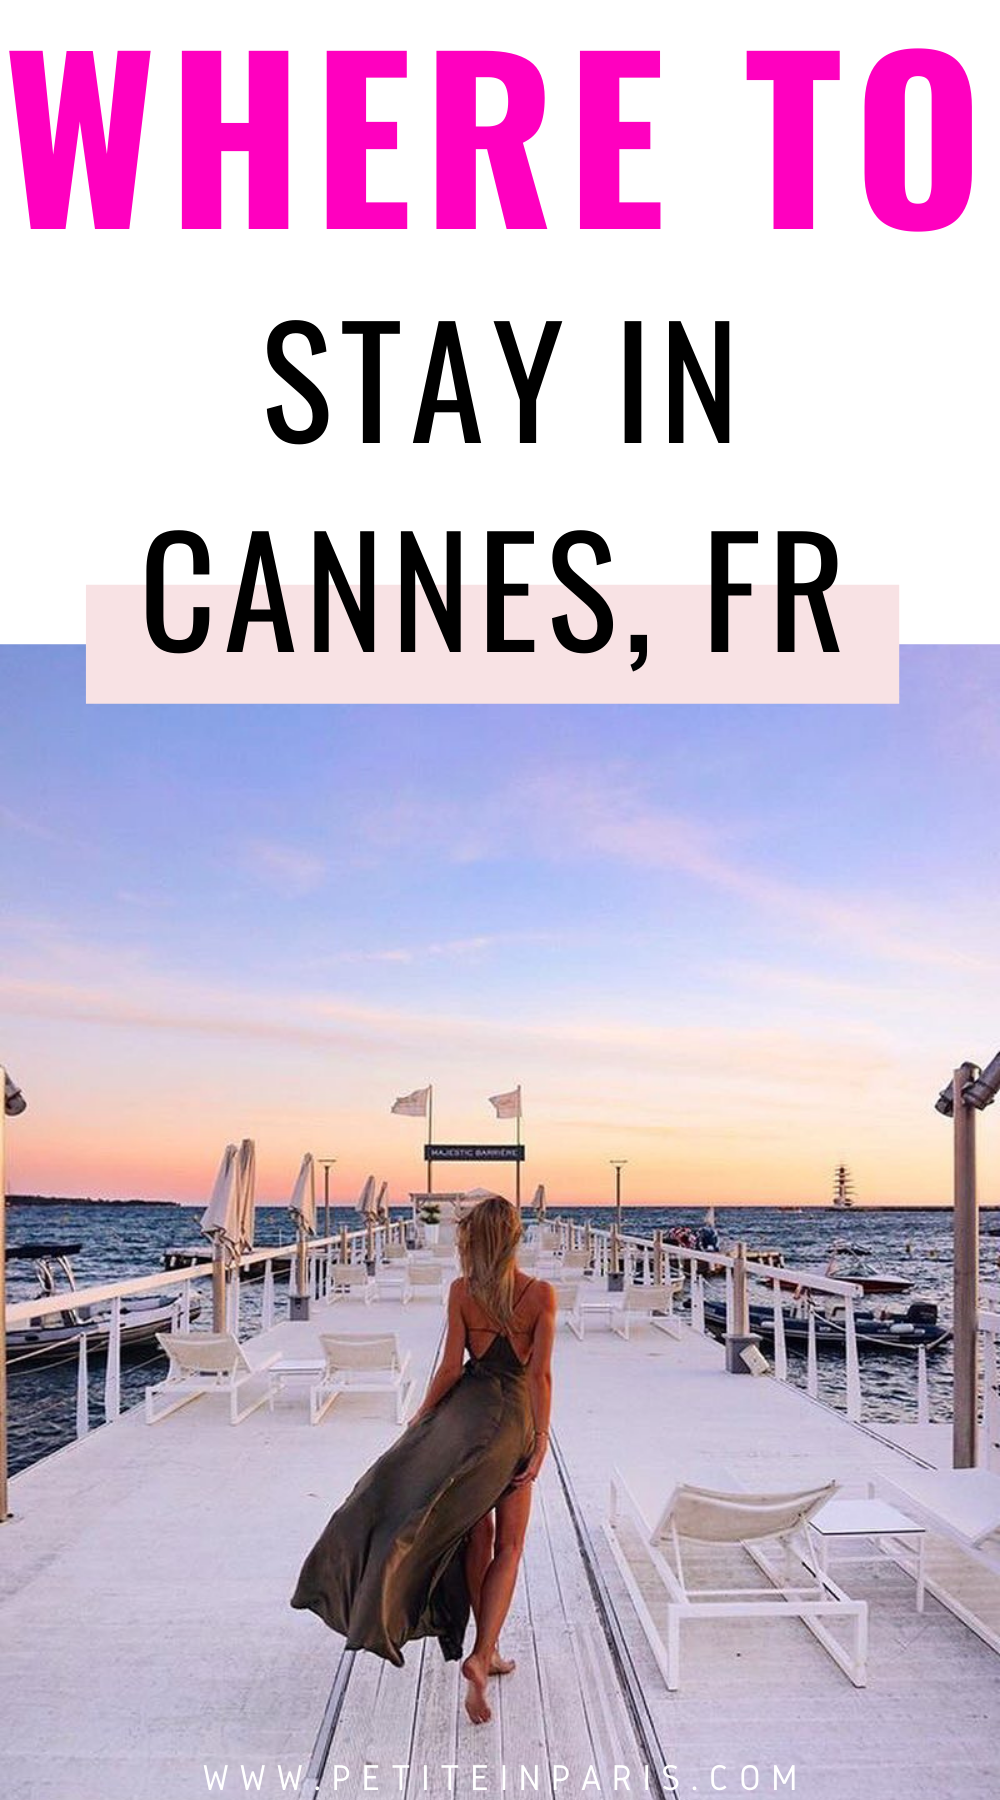 Where to stay in Cannes, France